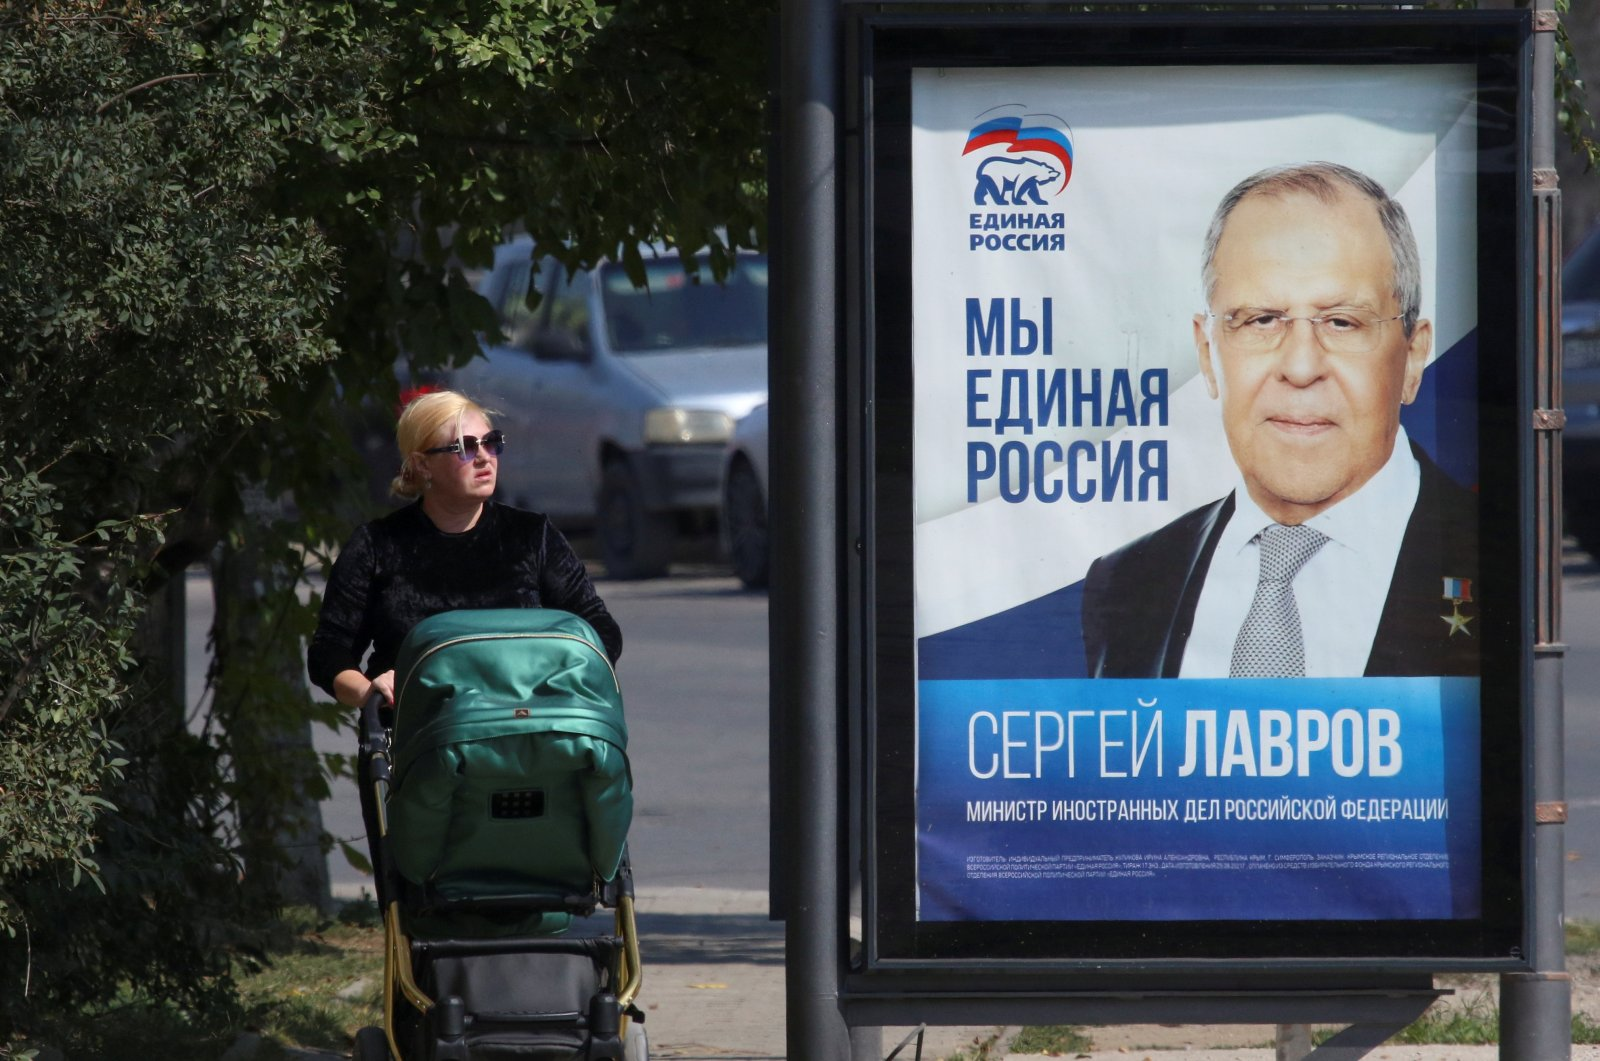 A woman walks past a campaign poster of Russian Foreign Minister Sergei Lavrov of the United Russia political party ahead of the Russian parliamentary and regional voting in Simferopol, Crimea, Sept. 15, 2021. (Alexey Pavlishak via Reuters)